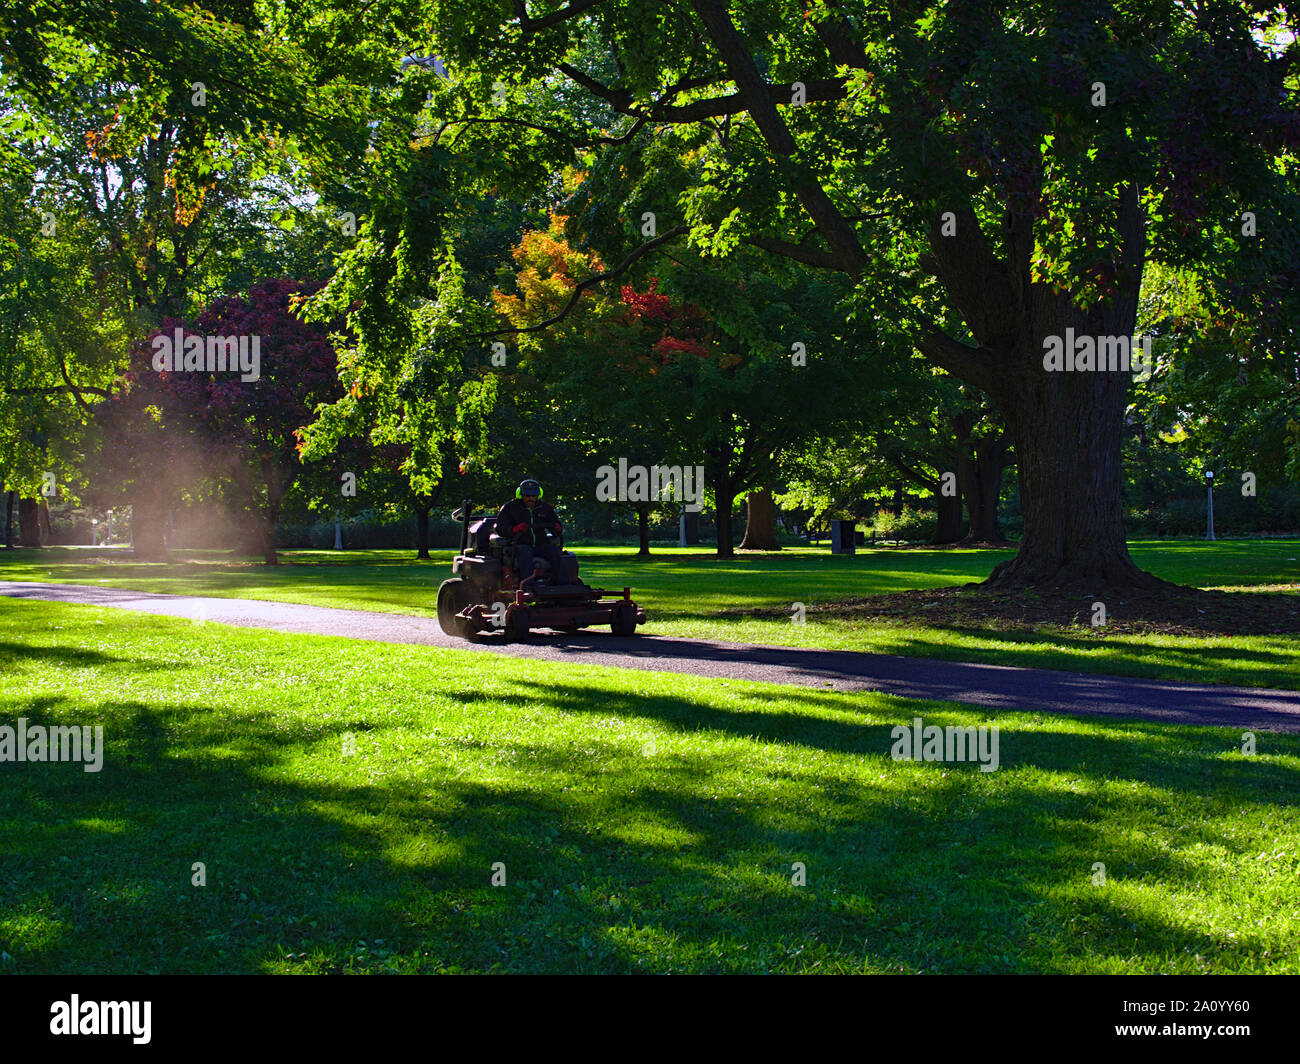 A ride-on lawn mower races down the path, trailing a cloud of dust in the early evening sun, Commissioners Park, Ottawa, Ontario, Canada. Stock Photo